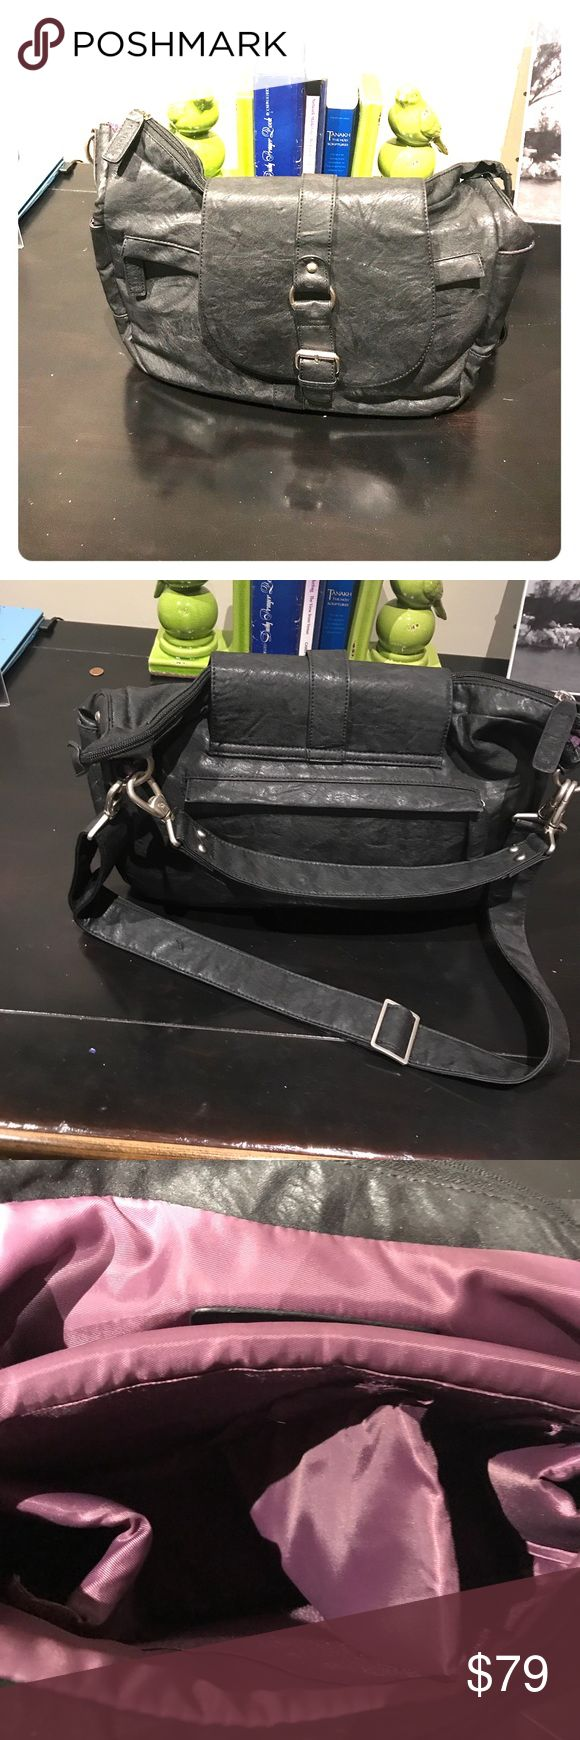 Kelly Moore Photography Bag This bag is great.  It looks like a bag but has plenty of room for DSLR cameras and some lenses to.  Plenty of room for your personal essentials as well. Kelly Moore is known for making stylish photography bags Kelly Moore Bags Shoulder Bags